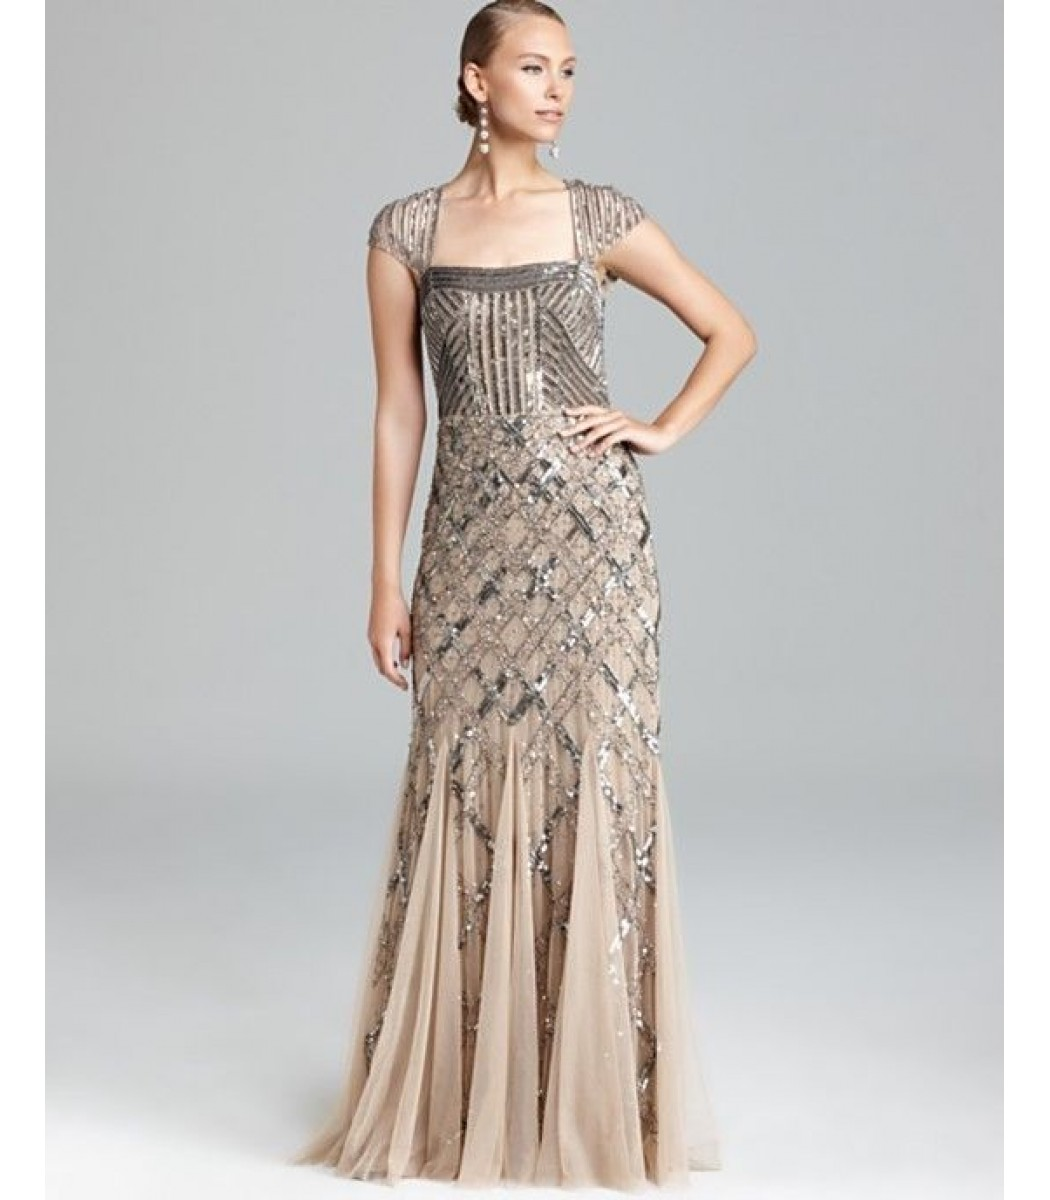 ADRIANNA PAPELL 092875460 Nude Formal Evening Gown Dress Sz 4 6 8 10 12 14 NWT